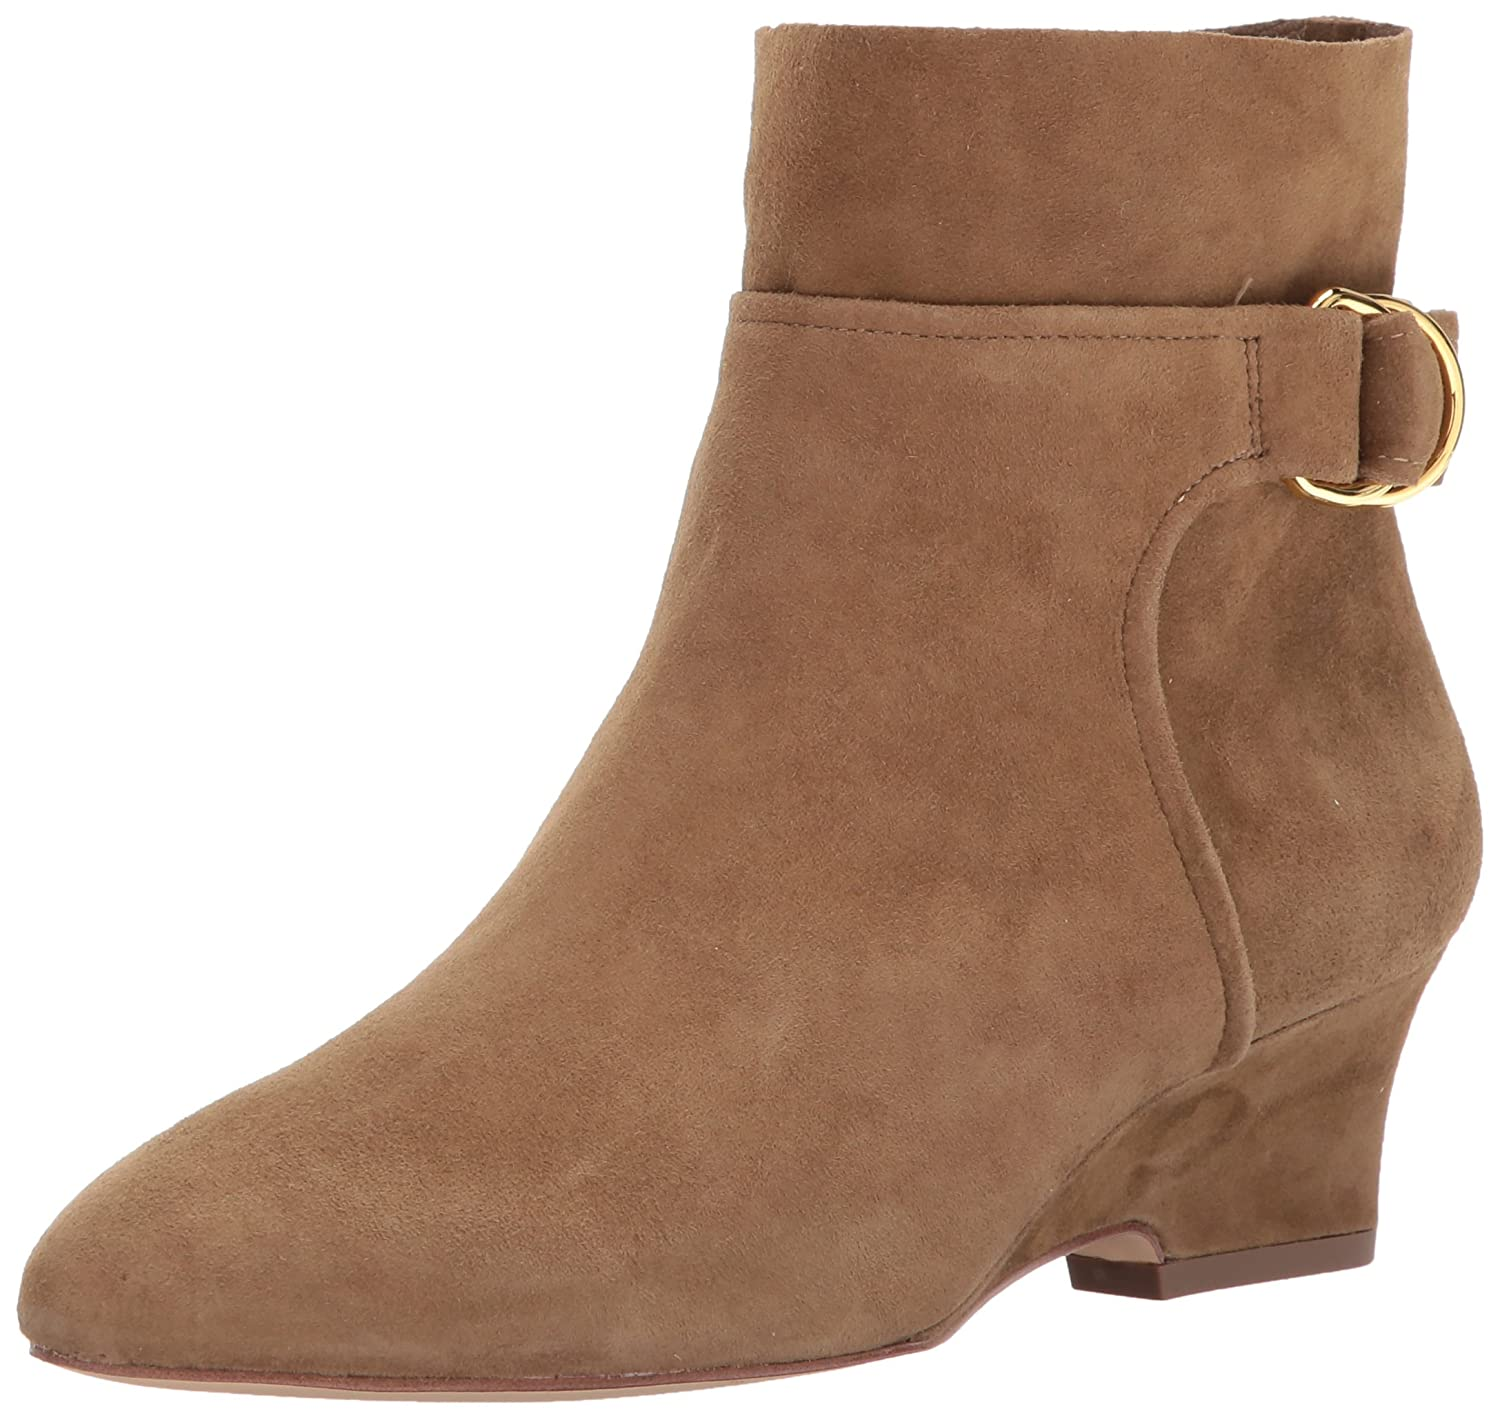 Nine West Women's Jabali Ankle Boot B06VVJ66KP 9.5 B(M) US|Green Suede